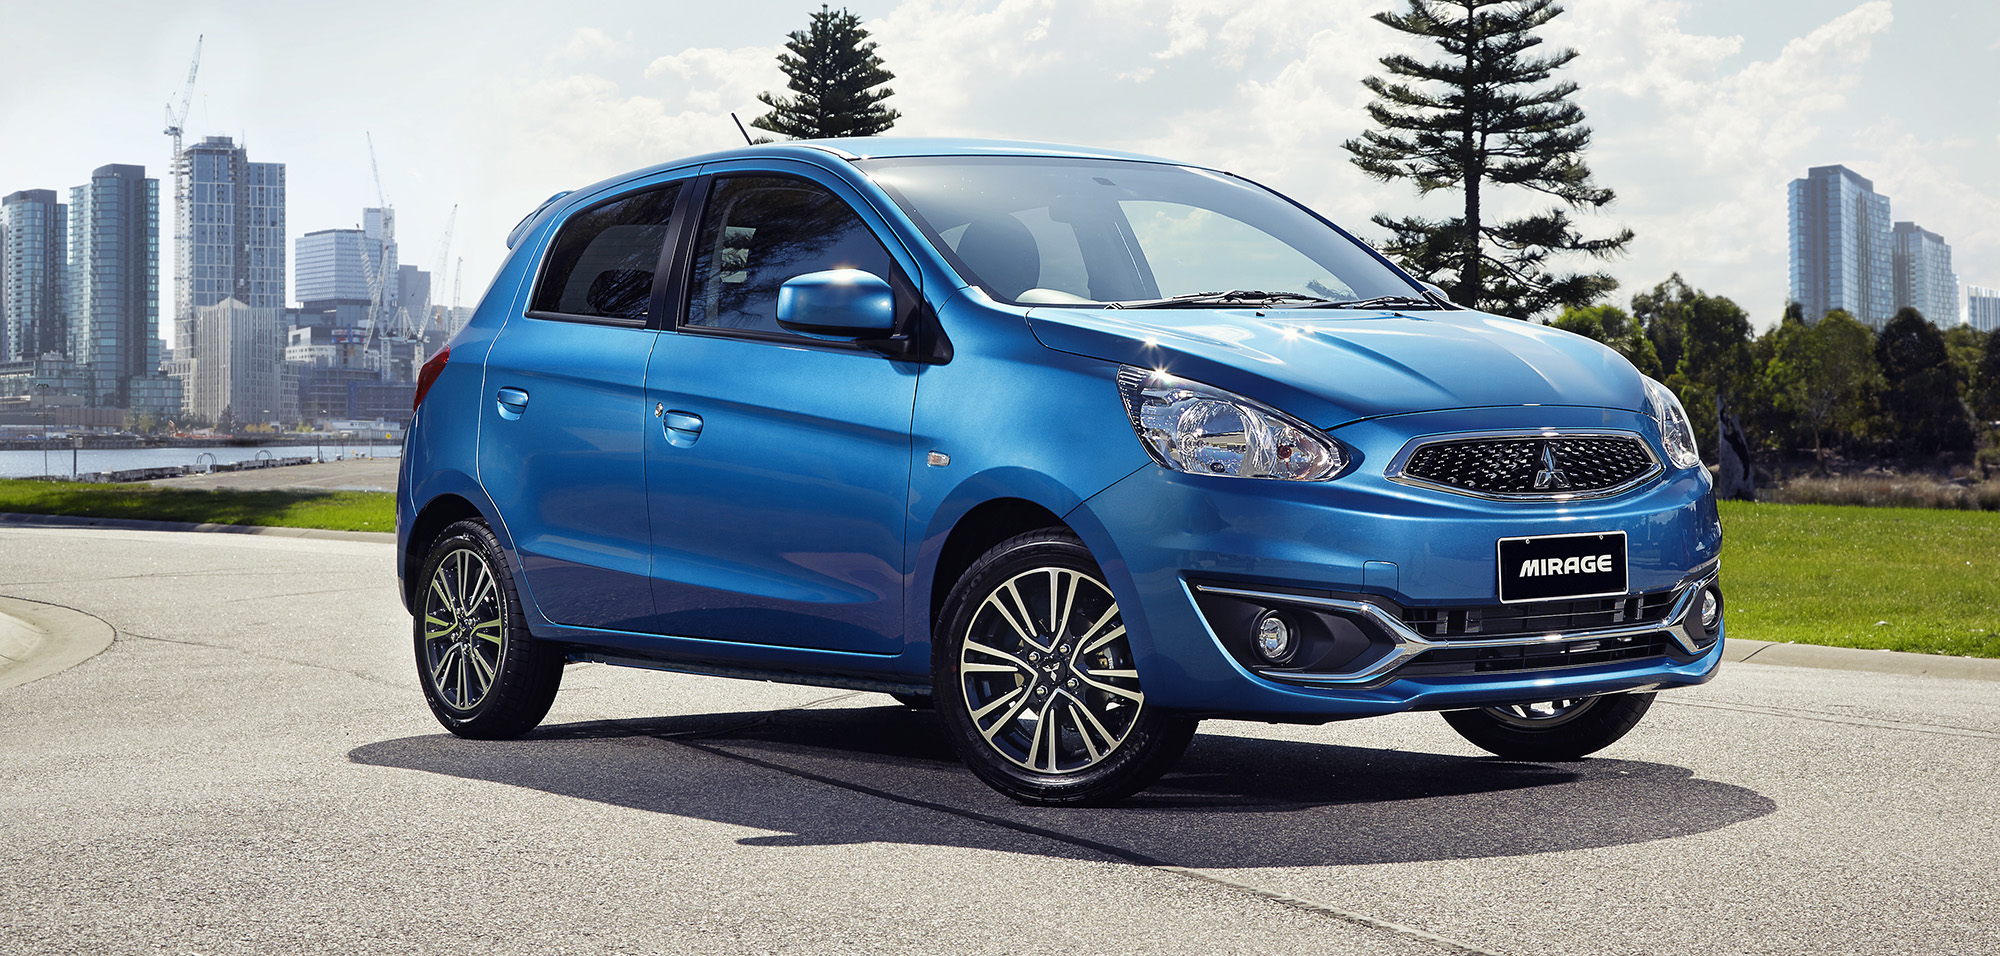 2016 Mitsubishi Mirage Pricing And Specifications